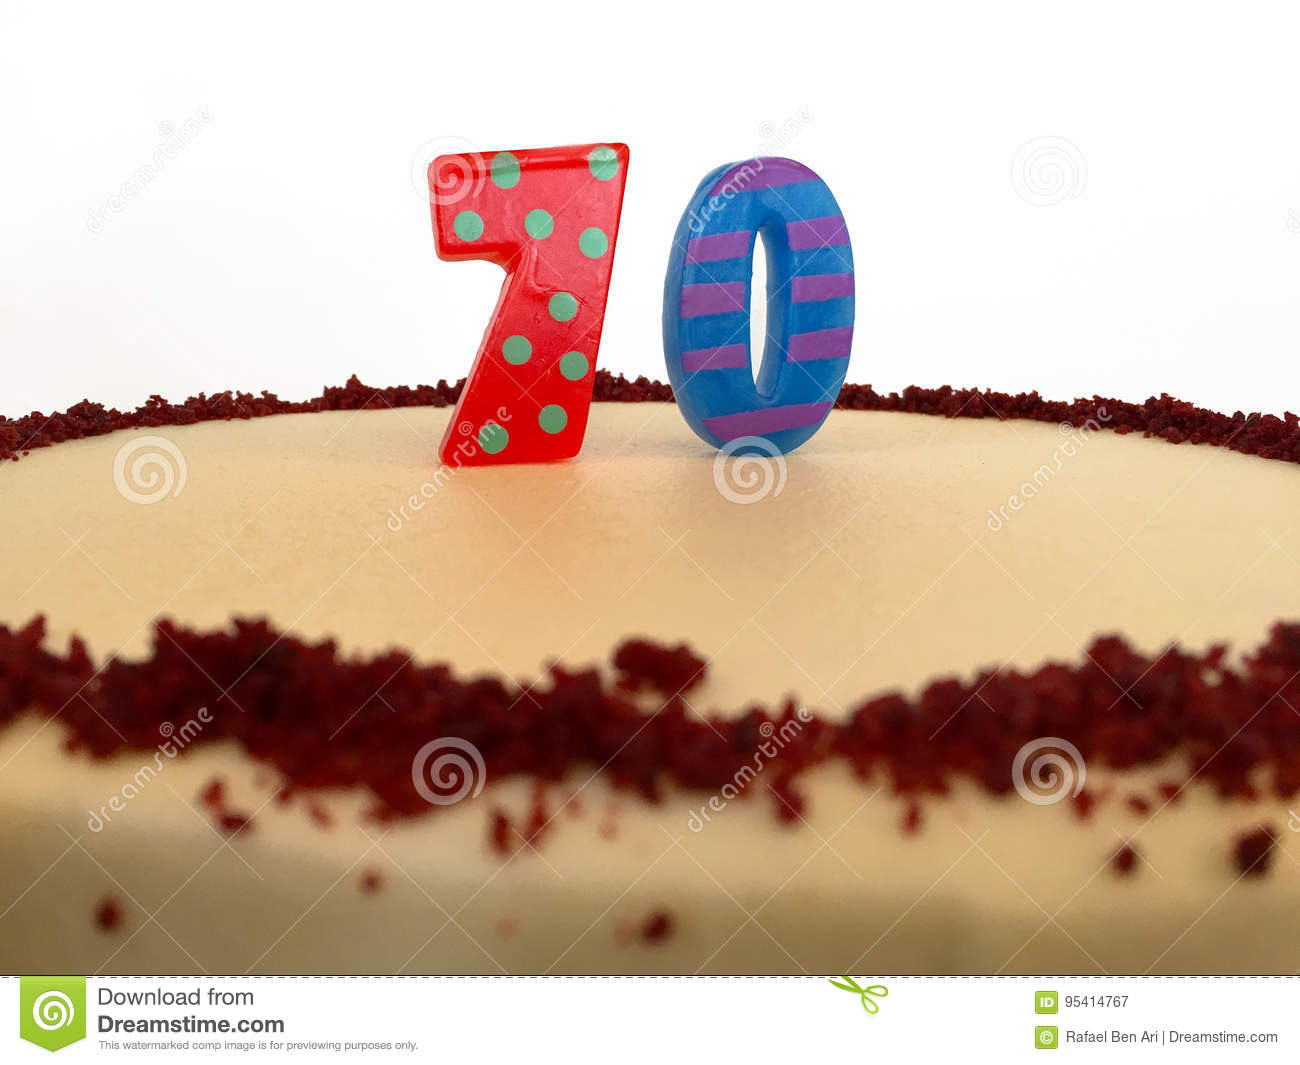 70th birthday cake stock image image of candle food 95414767